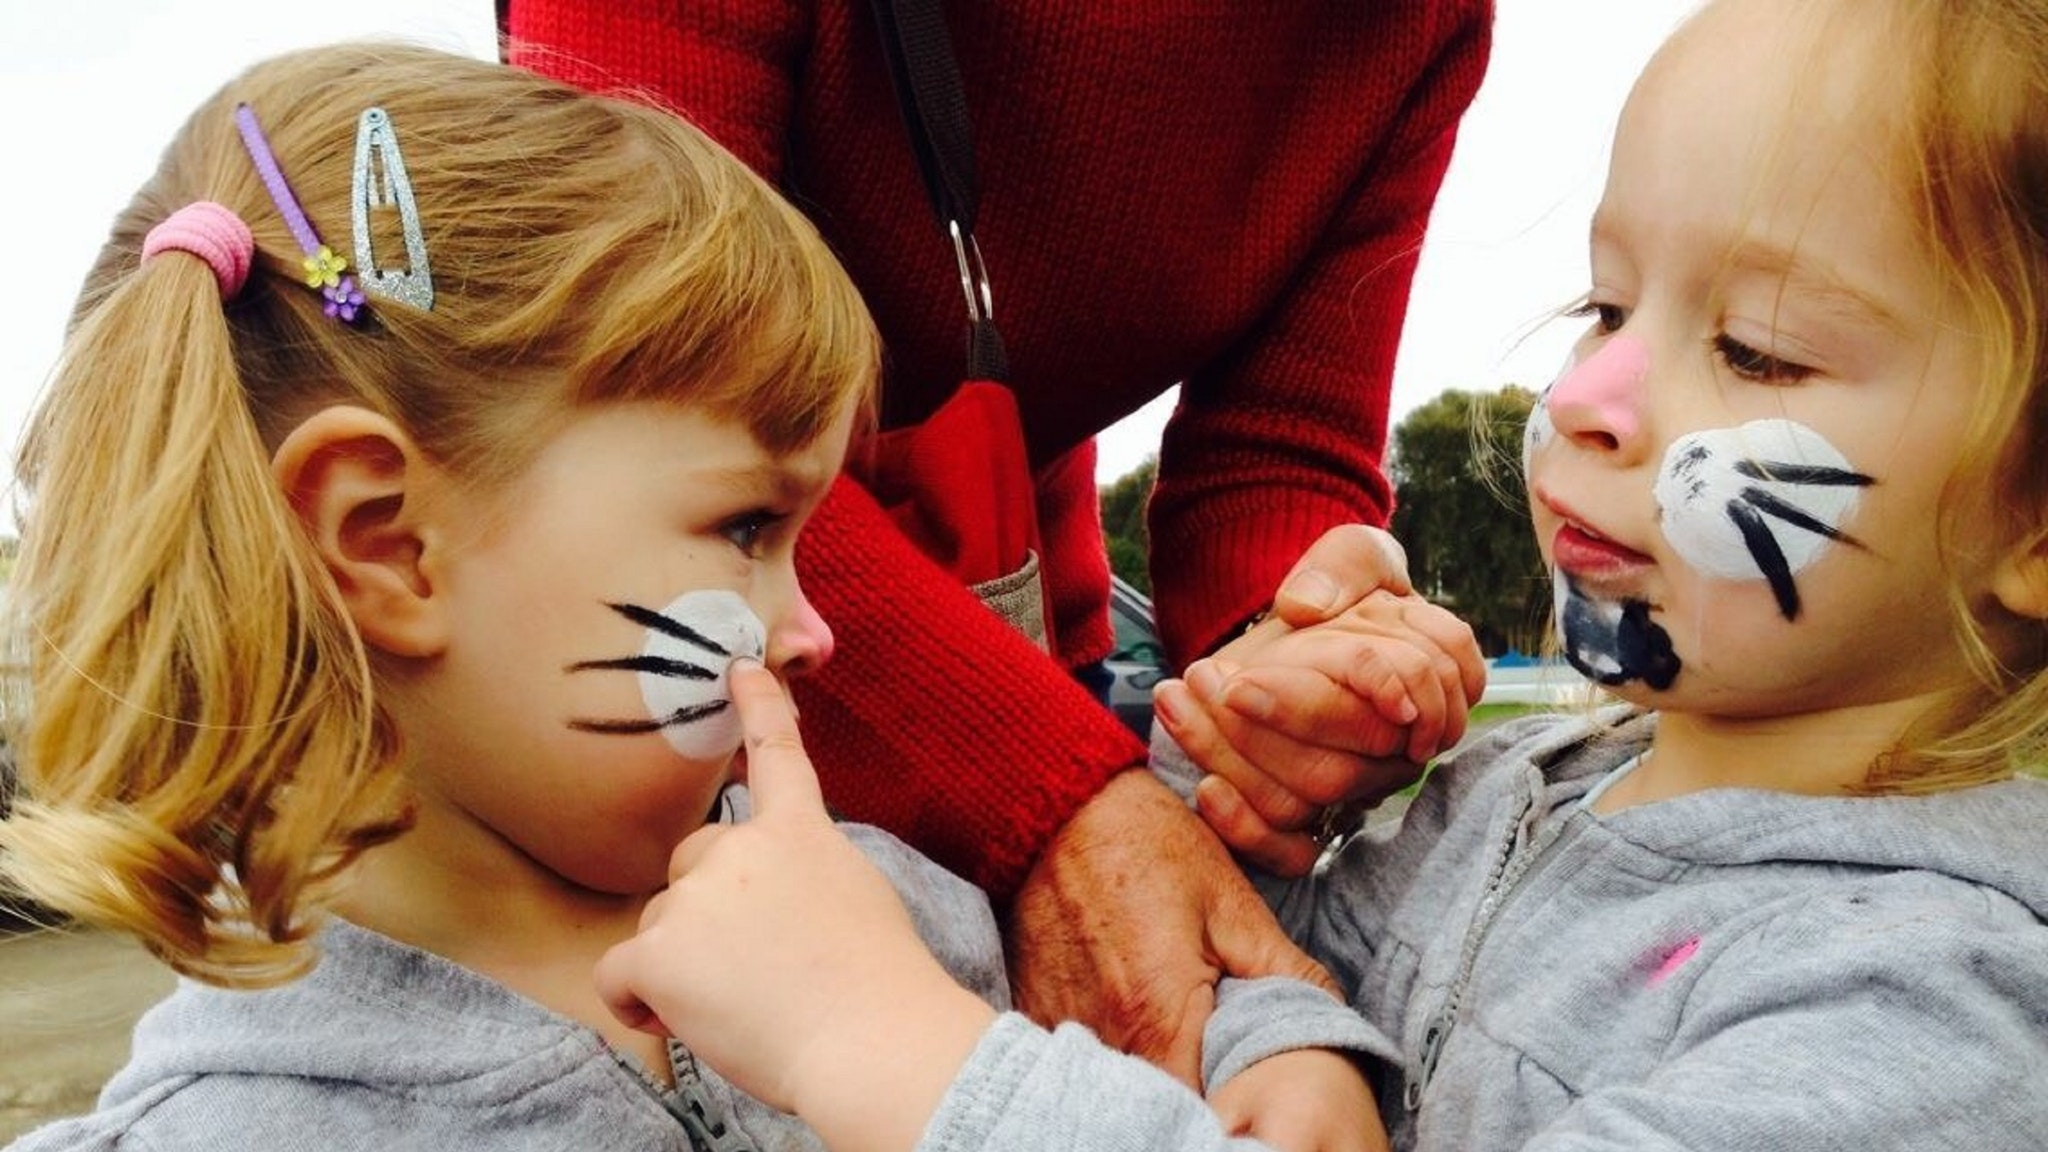 Facepainting fun for all Egg hunters